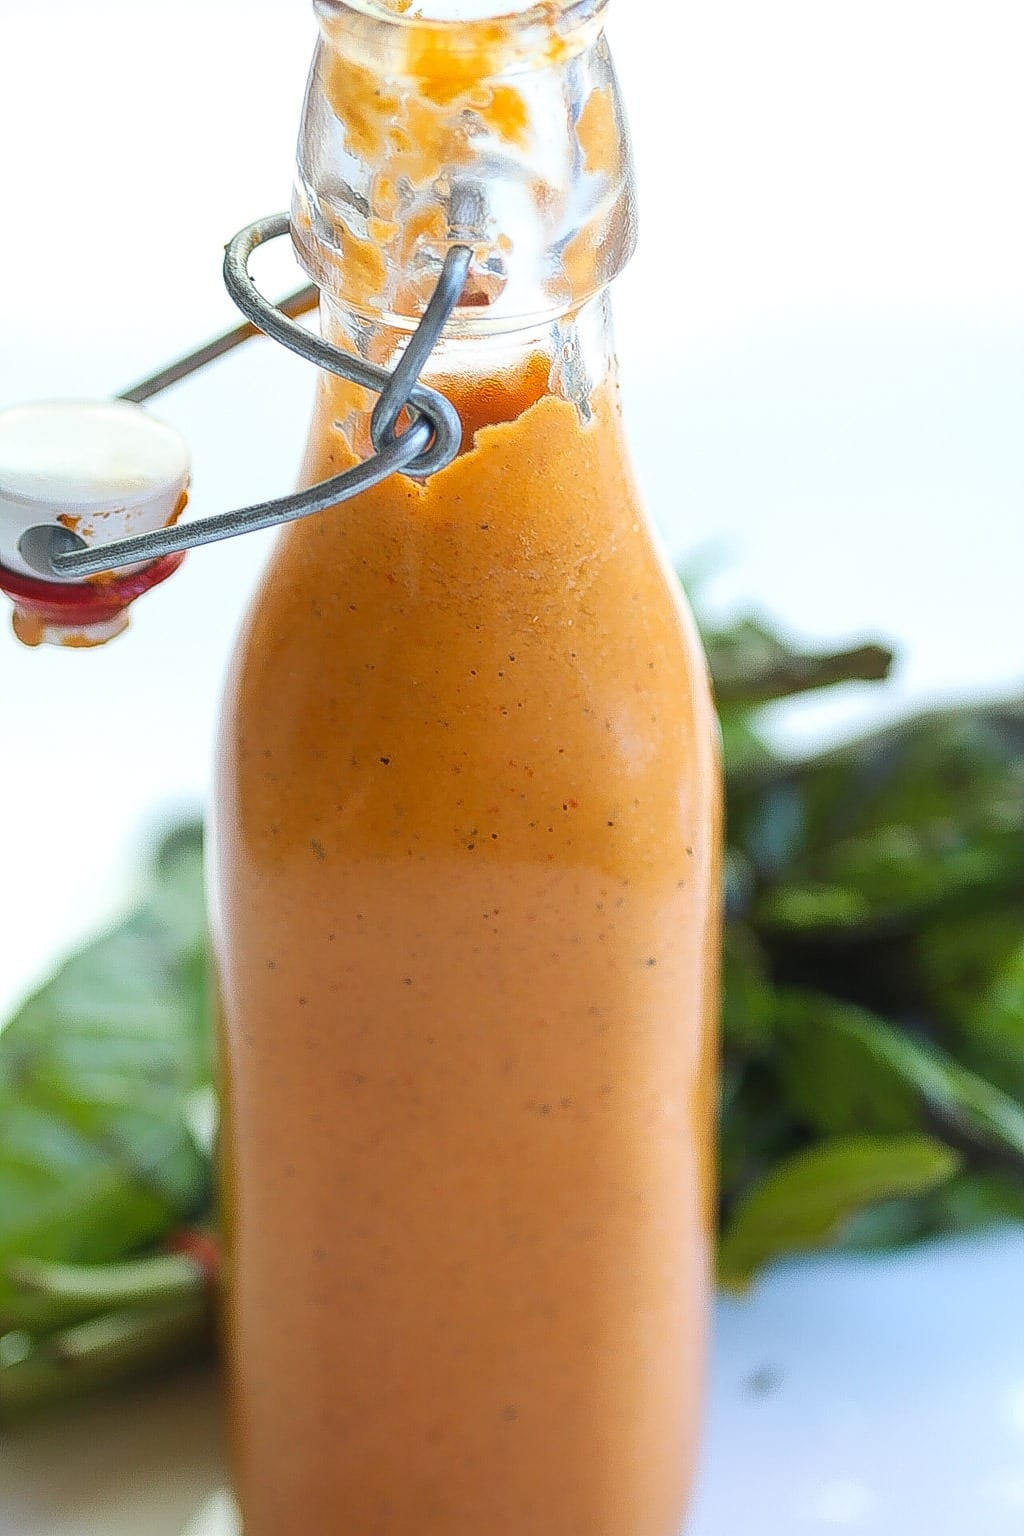 bottled roasted tight shot of red pepper sauce with basil